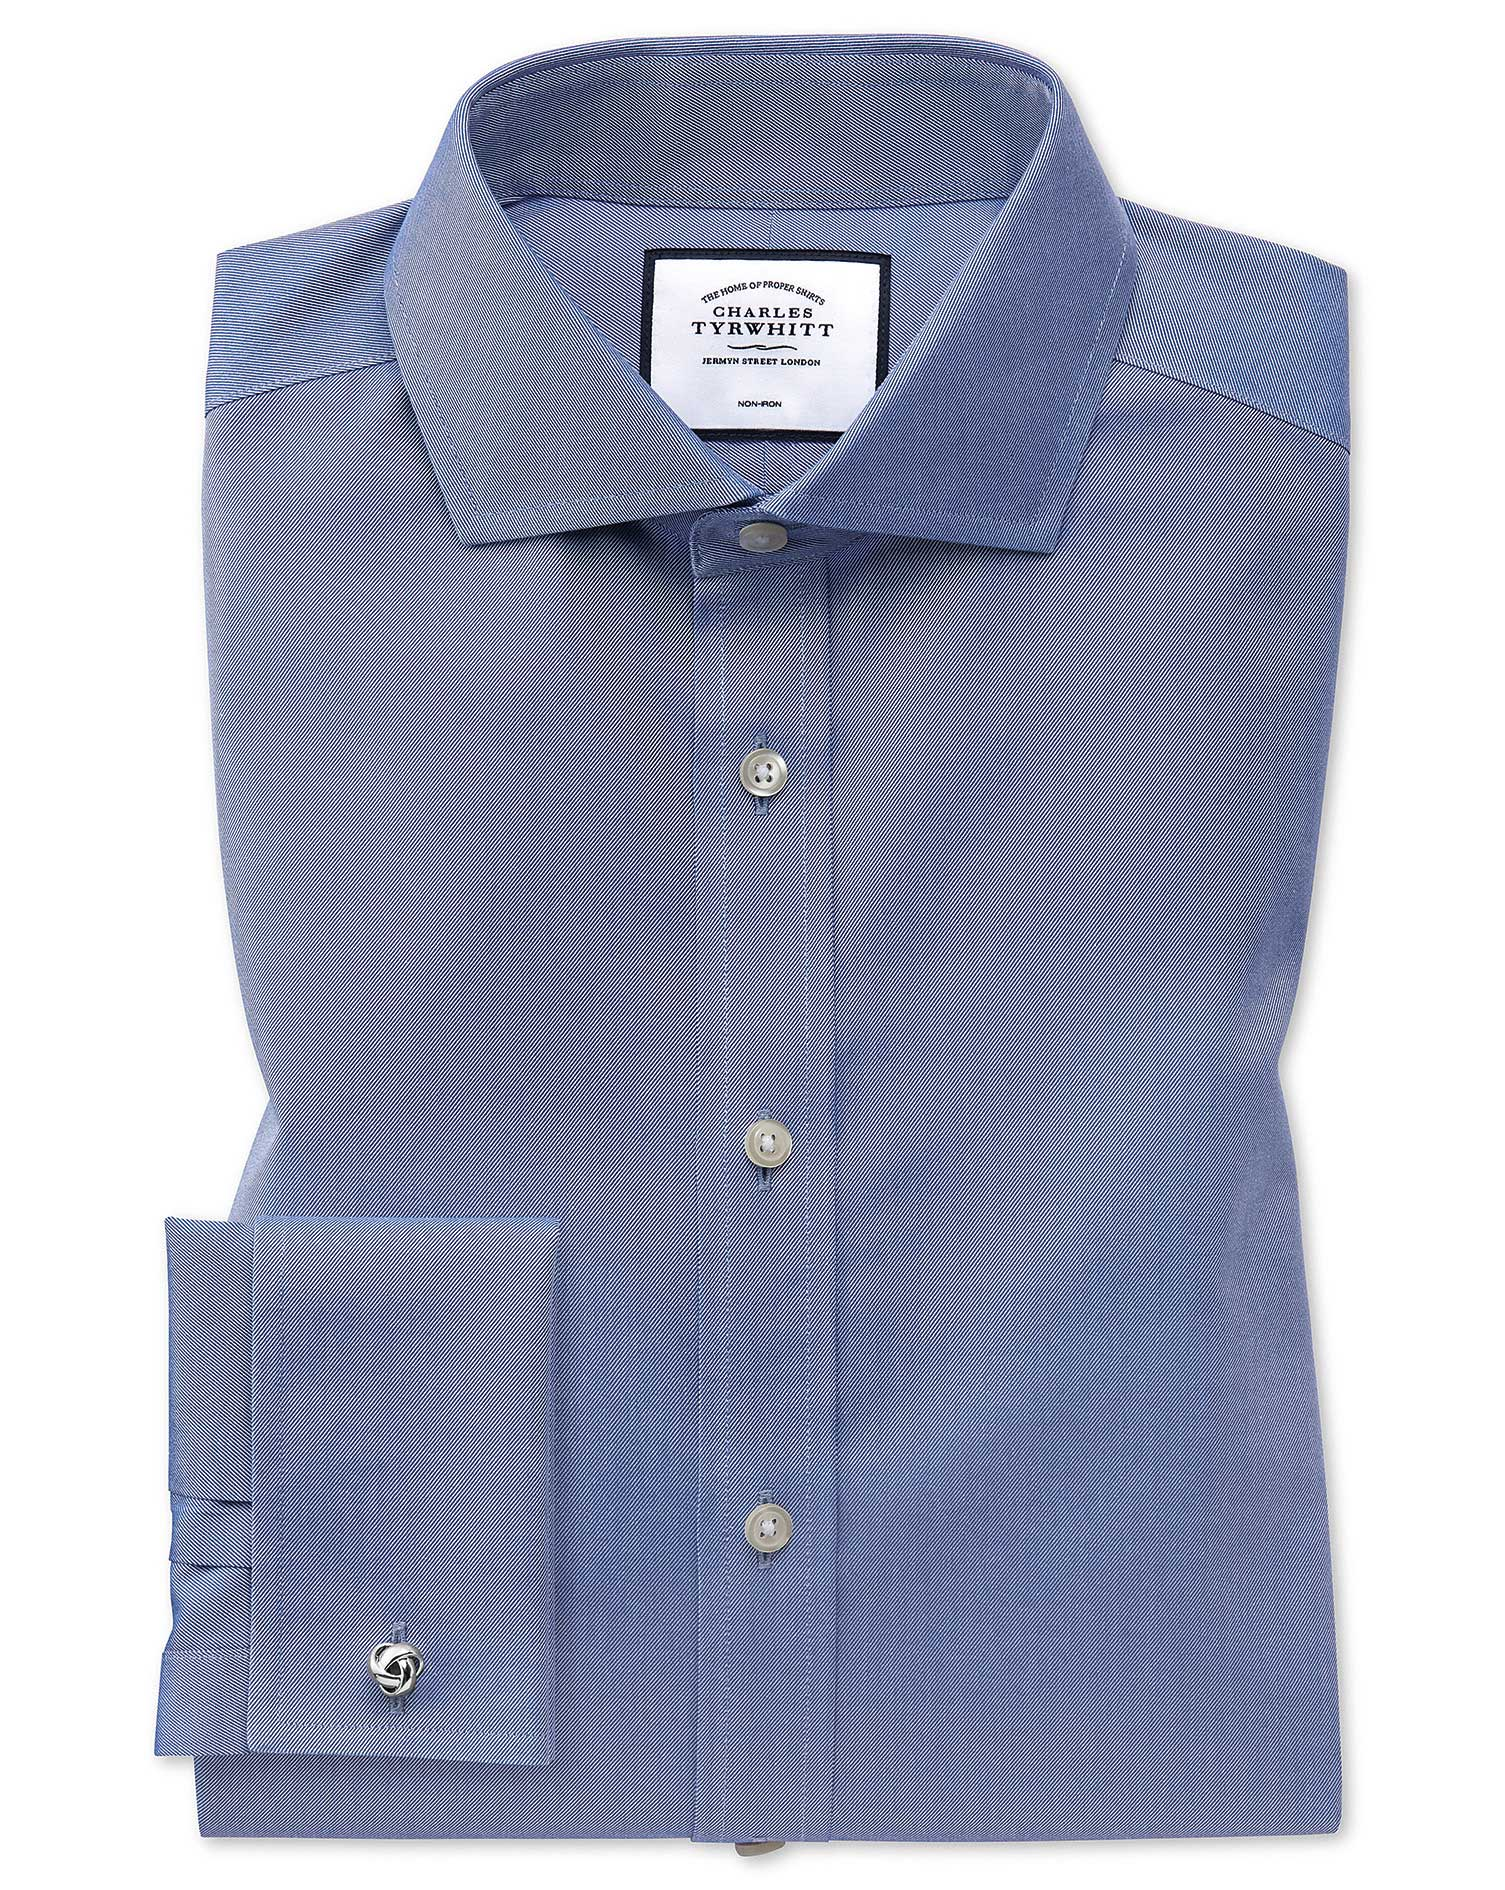 Slim Fit Cutaway Non-Iron Twill Mid Blue Cotton Formal Shirt Single Cuff Size 16/38 by Charles Tyrwh